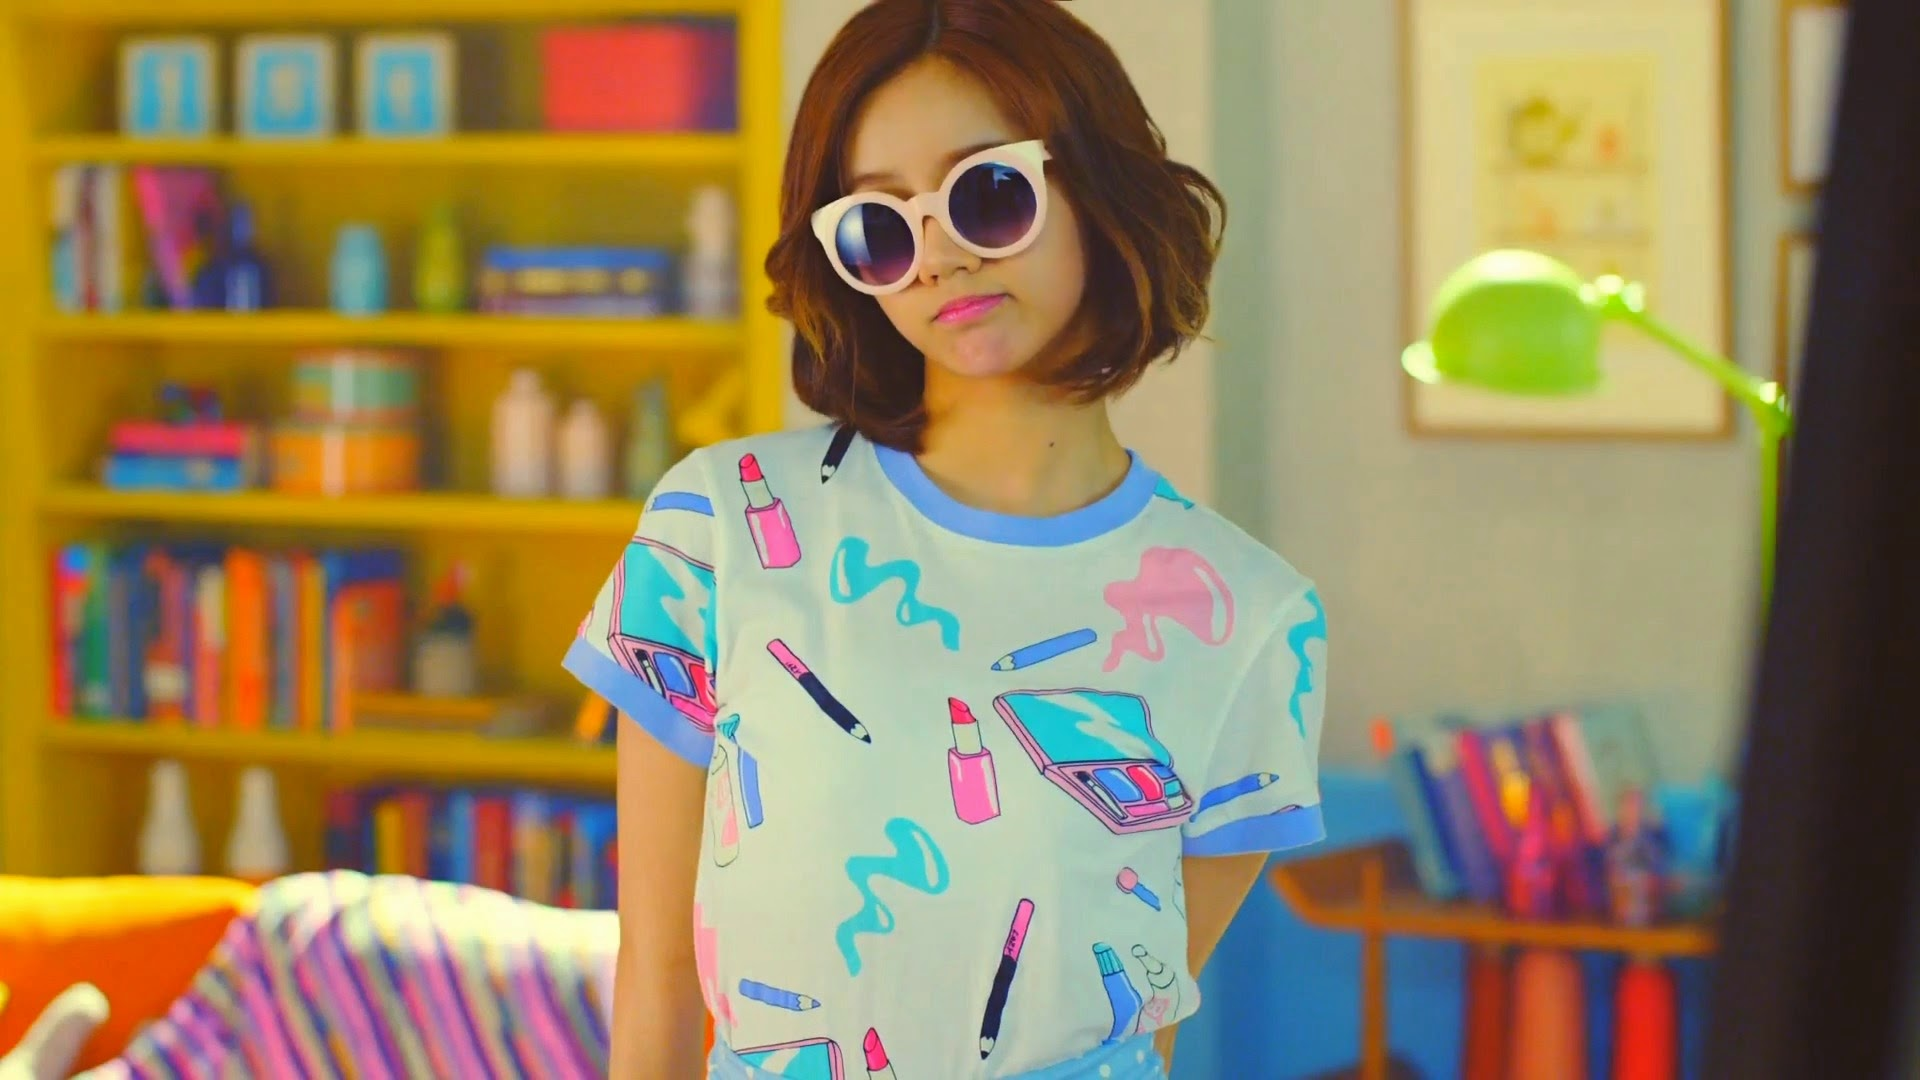 http://s8.picofile.com/file/8331999892/Lee_Hyeri_full_42164.jpg